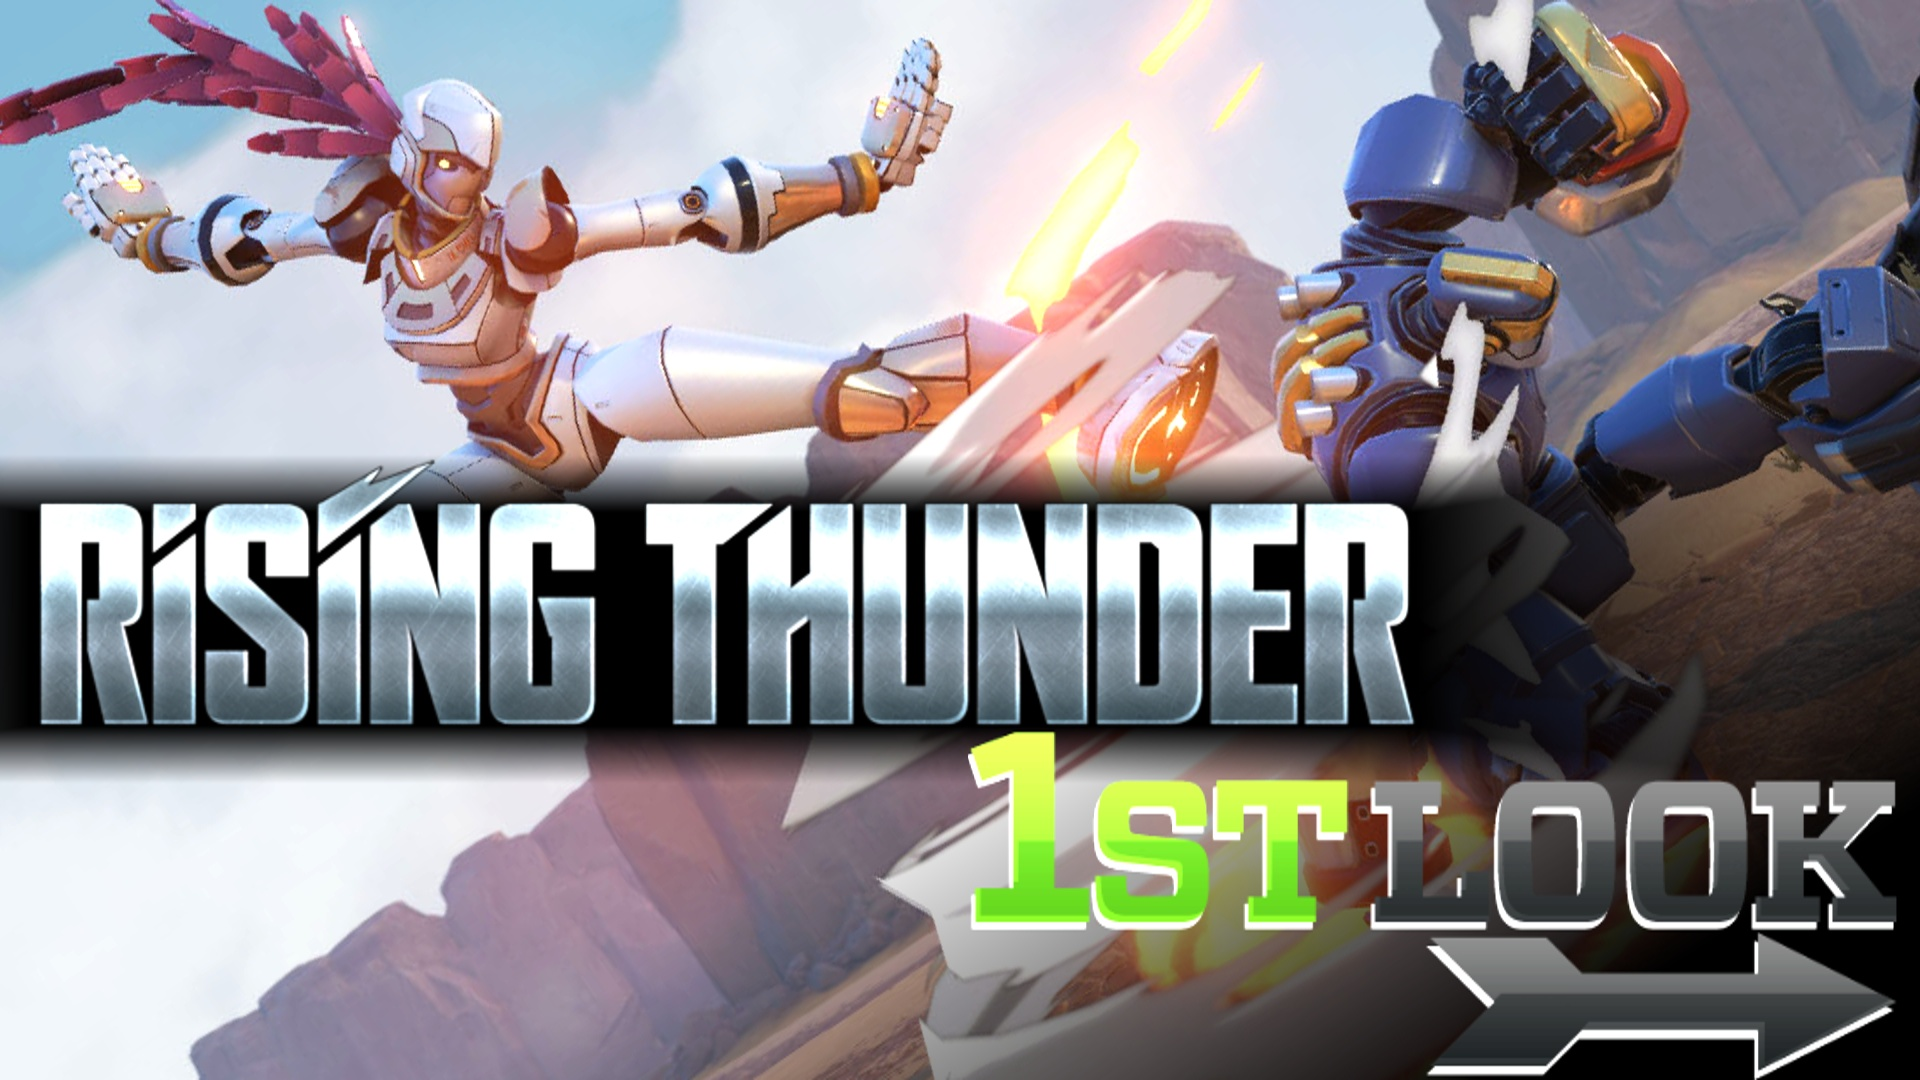 Rising Thunder - First Look Radiant Entertainment